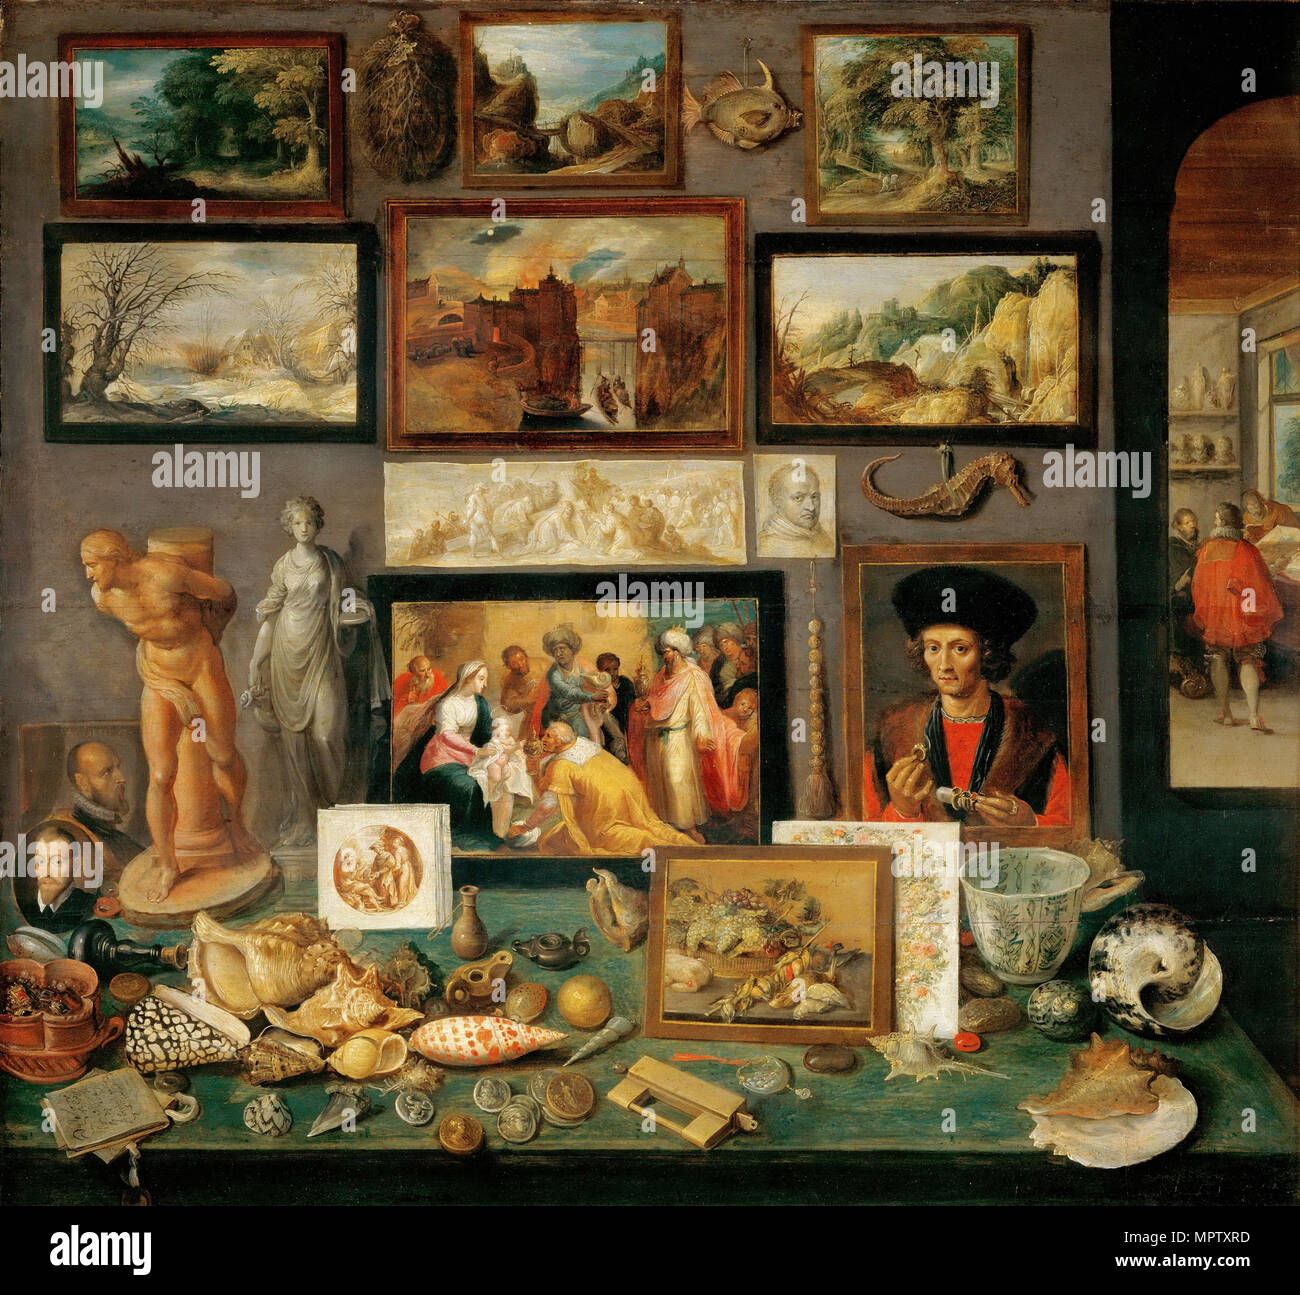 The Collector's Cabinet (Cabinets of curiosities). - Stock Image